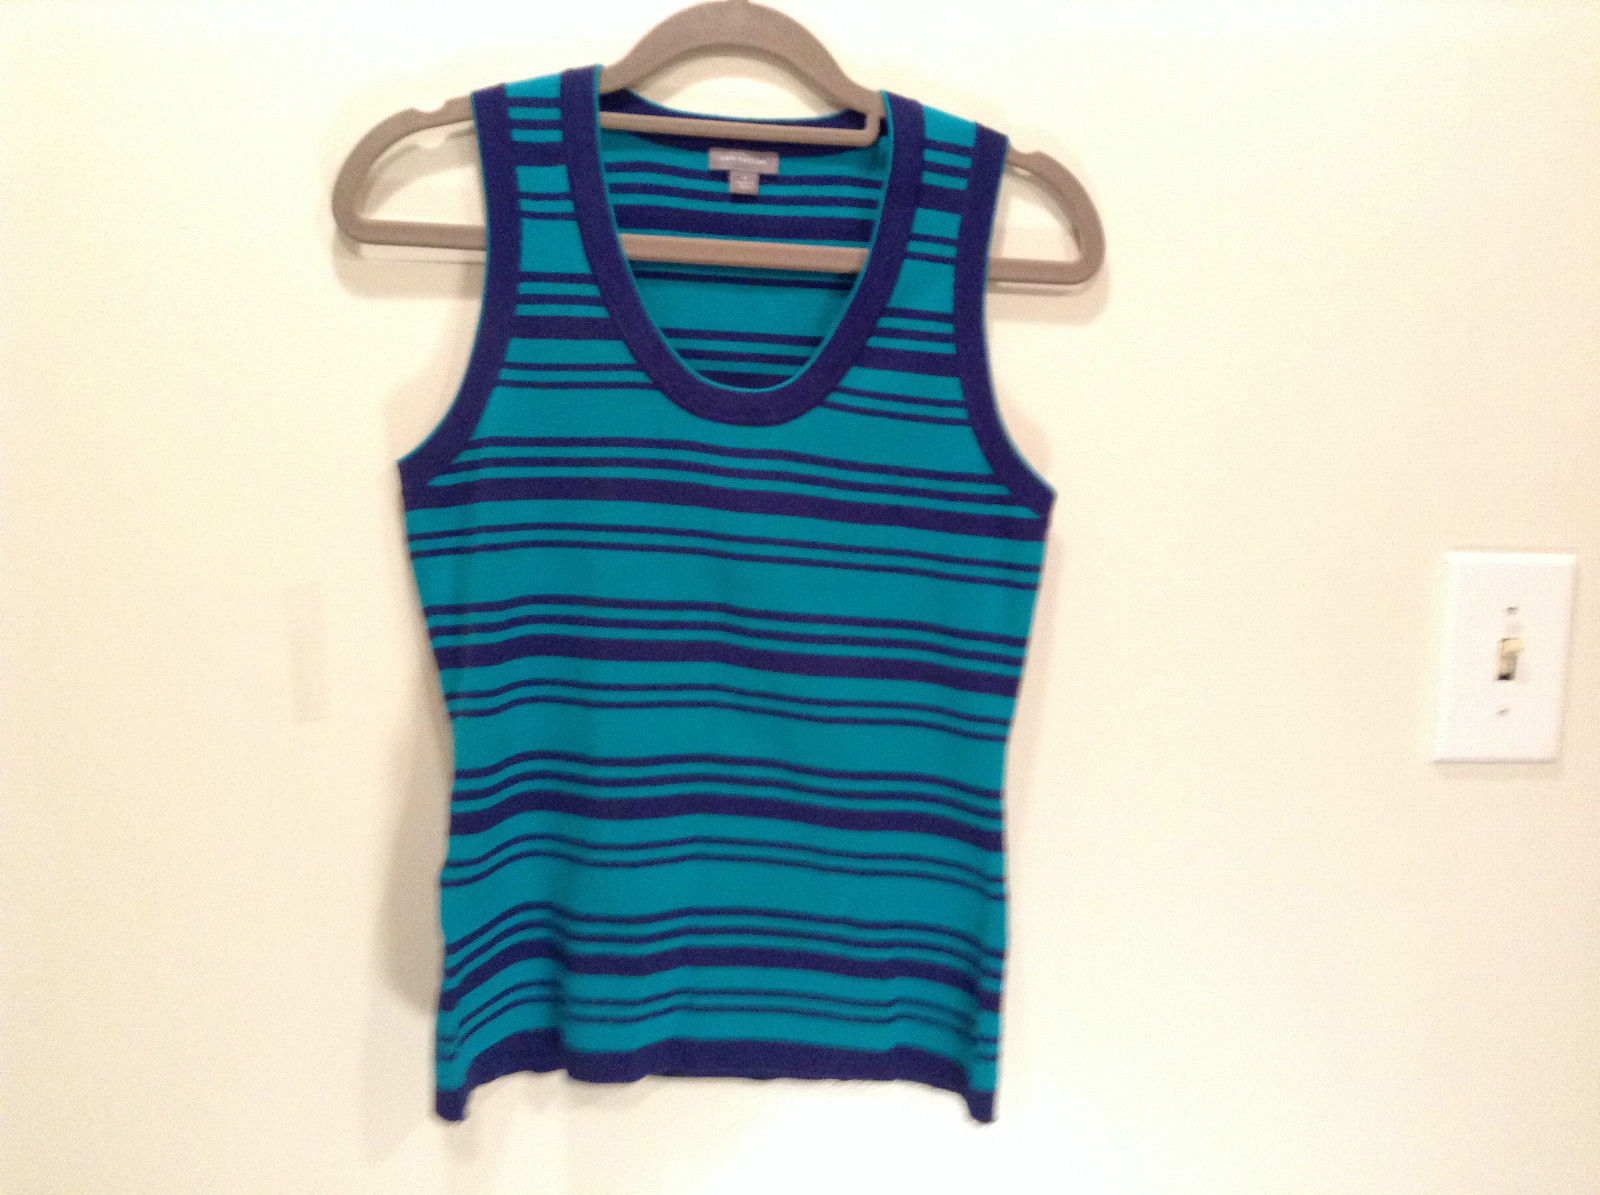 Green with Blue Stripes Ann Taylor Knitted Sleeveless Top Size Small Scoop Neck